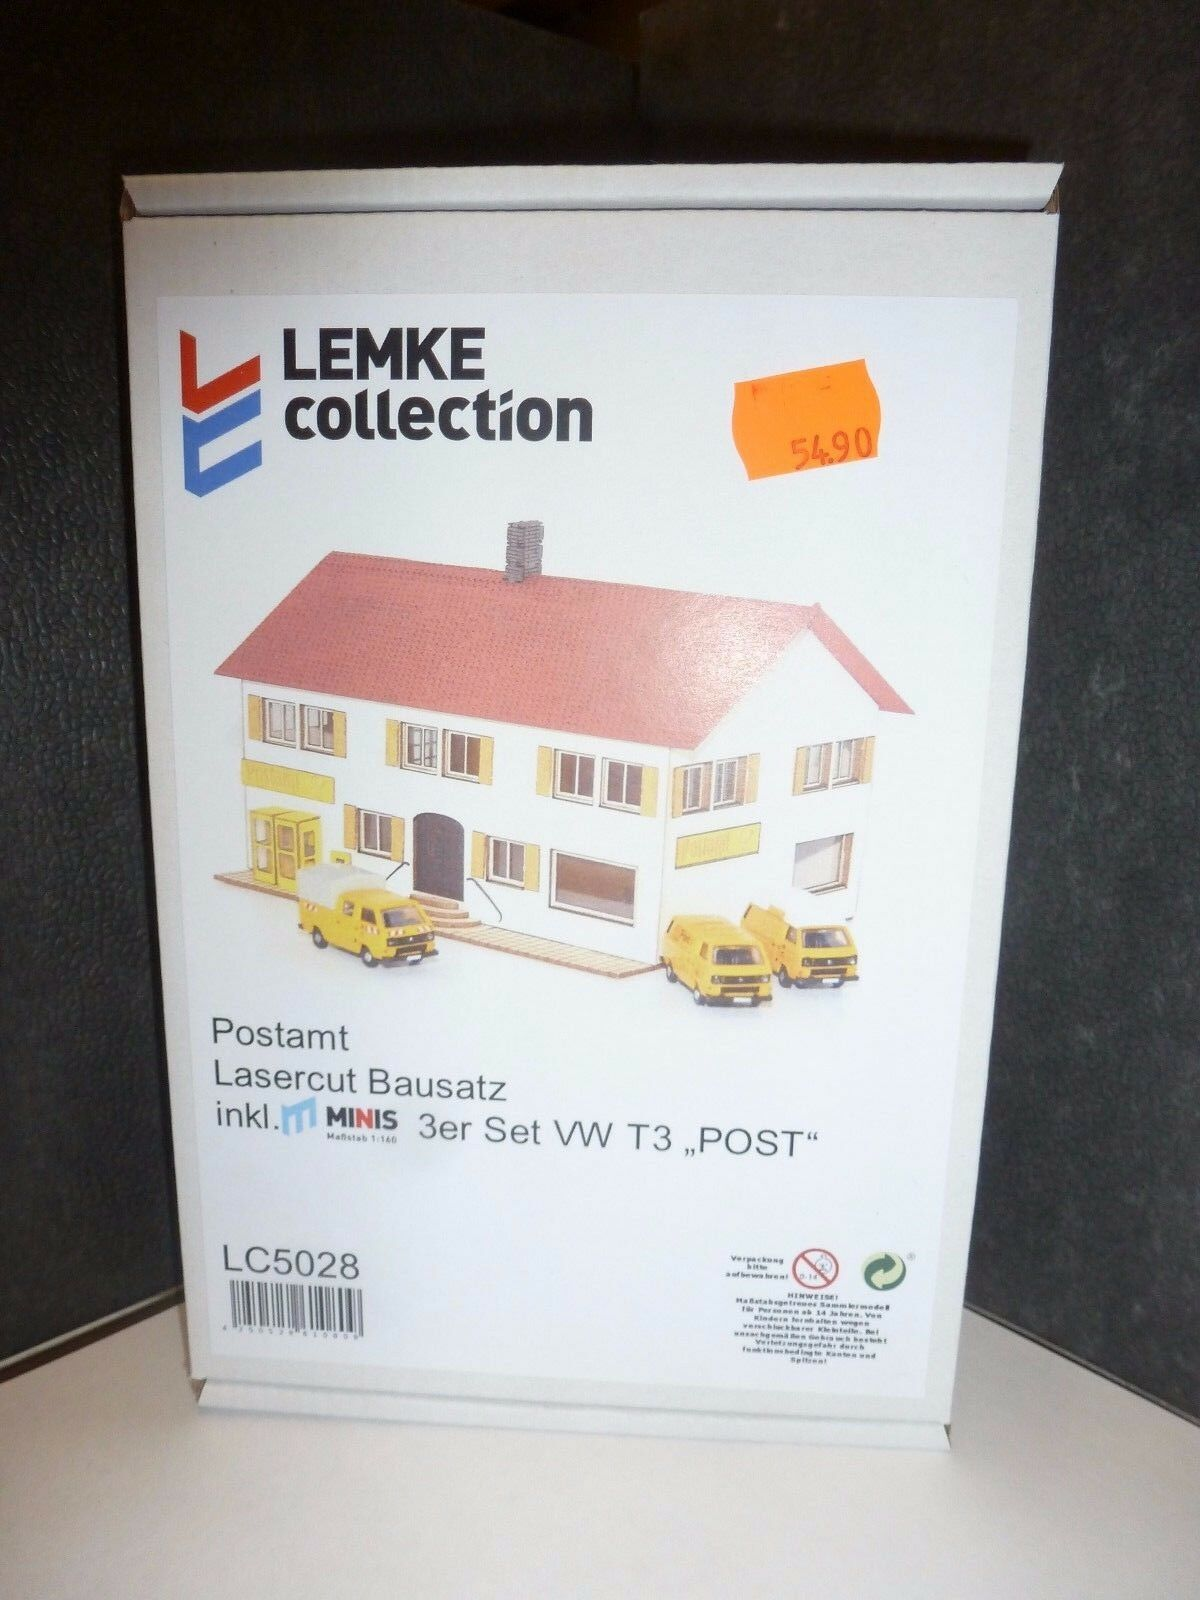 Lemke post edificio incl. 1x VW t3 post 3er set,